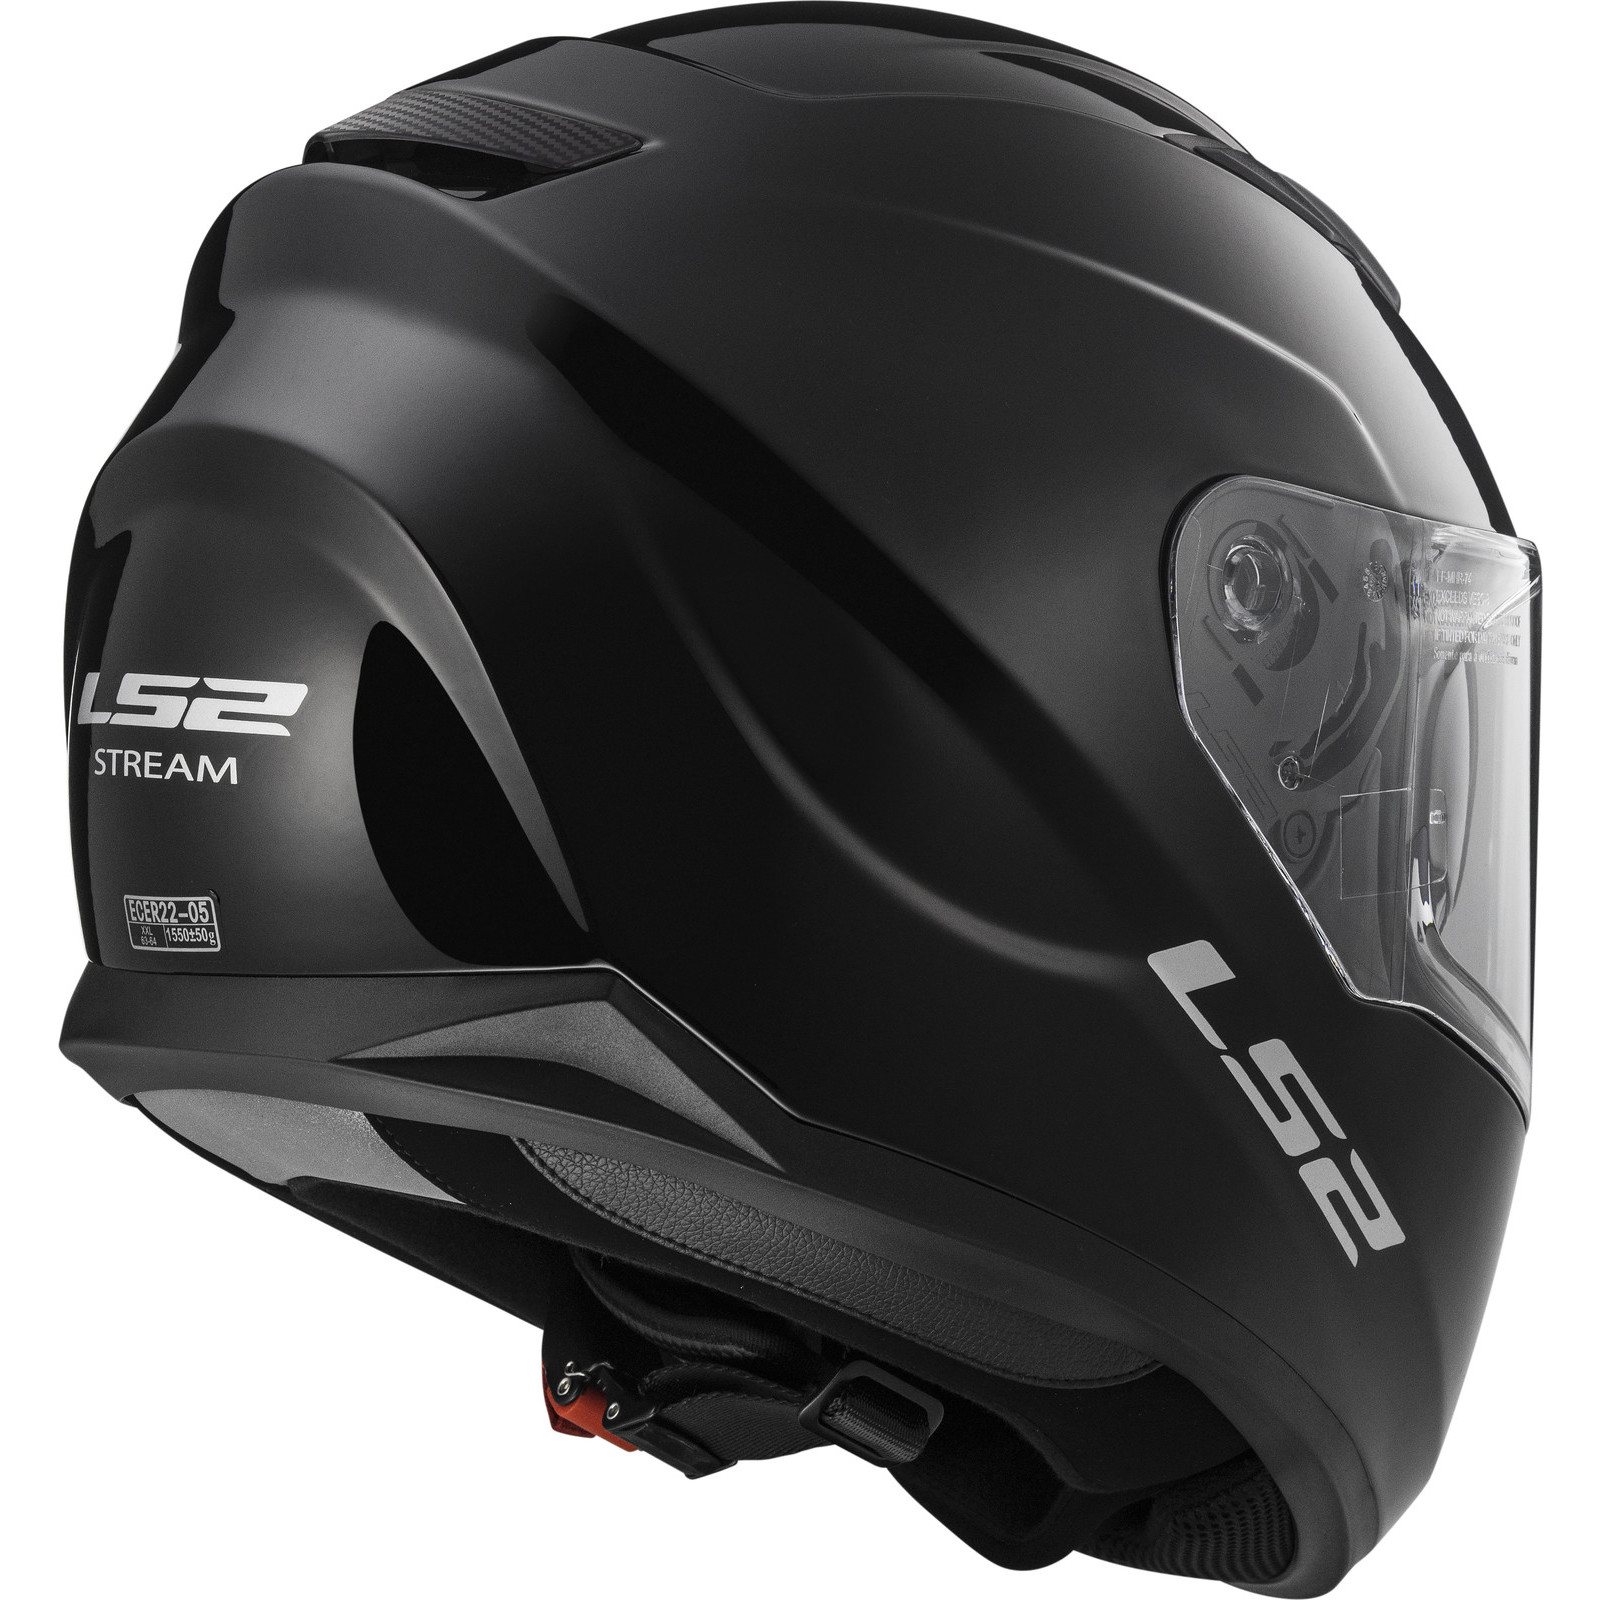 Helmet LS2 320 STREAM (SOLID Black)